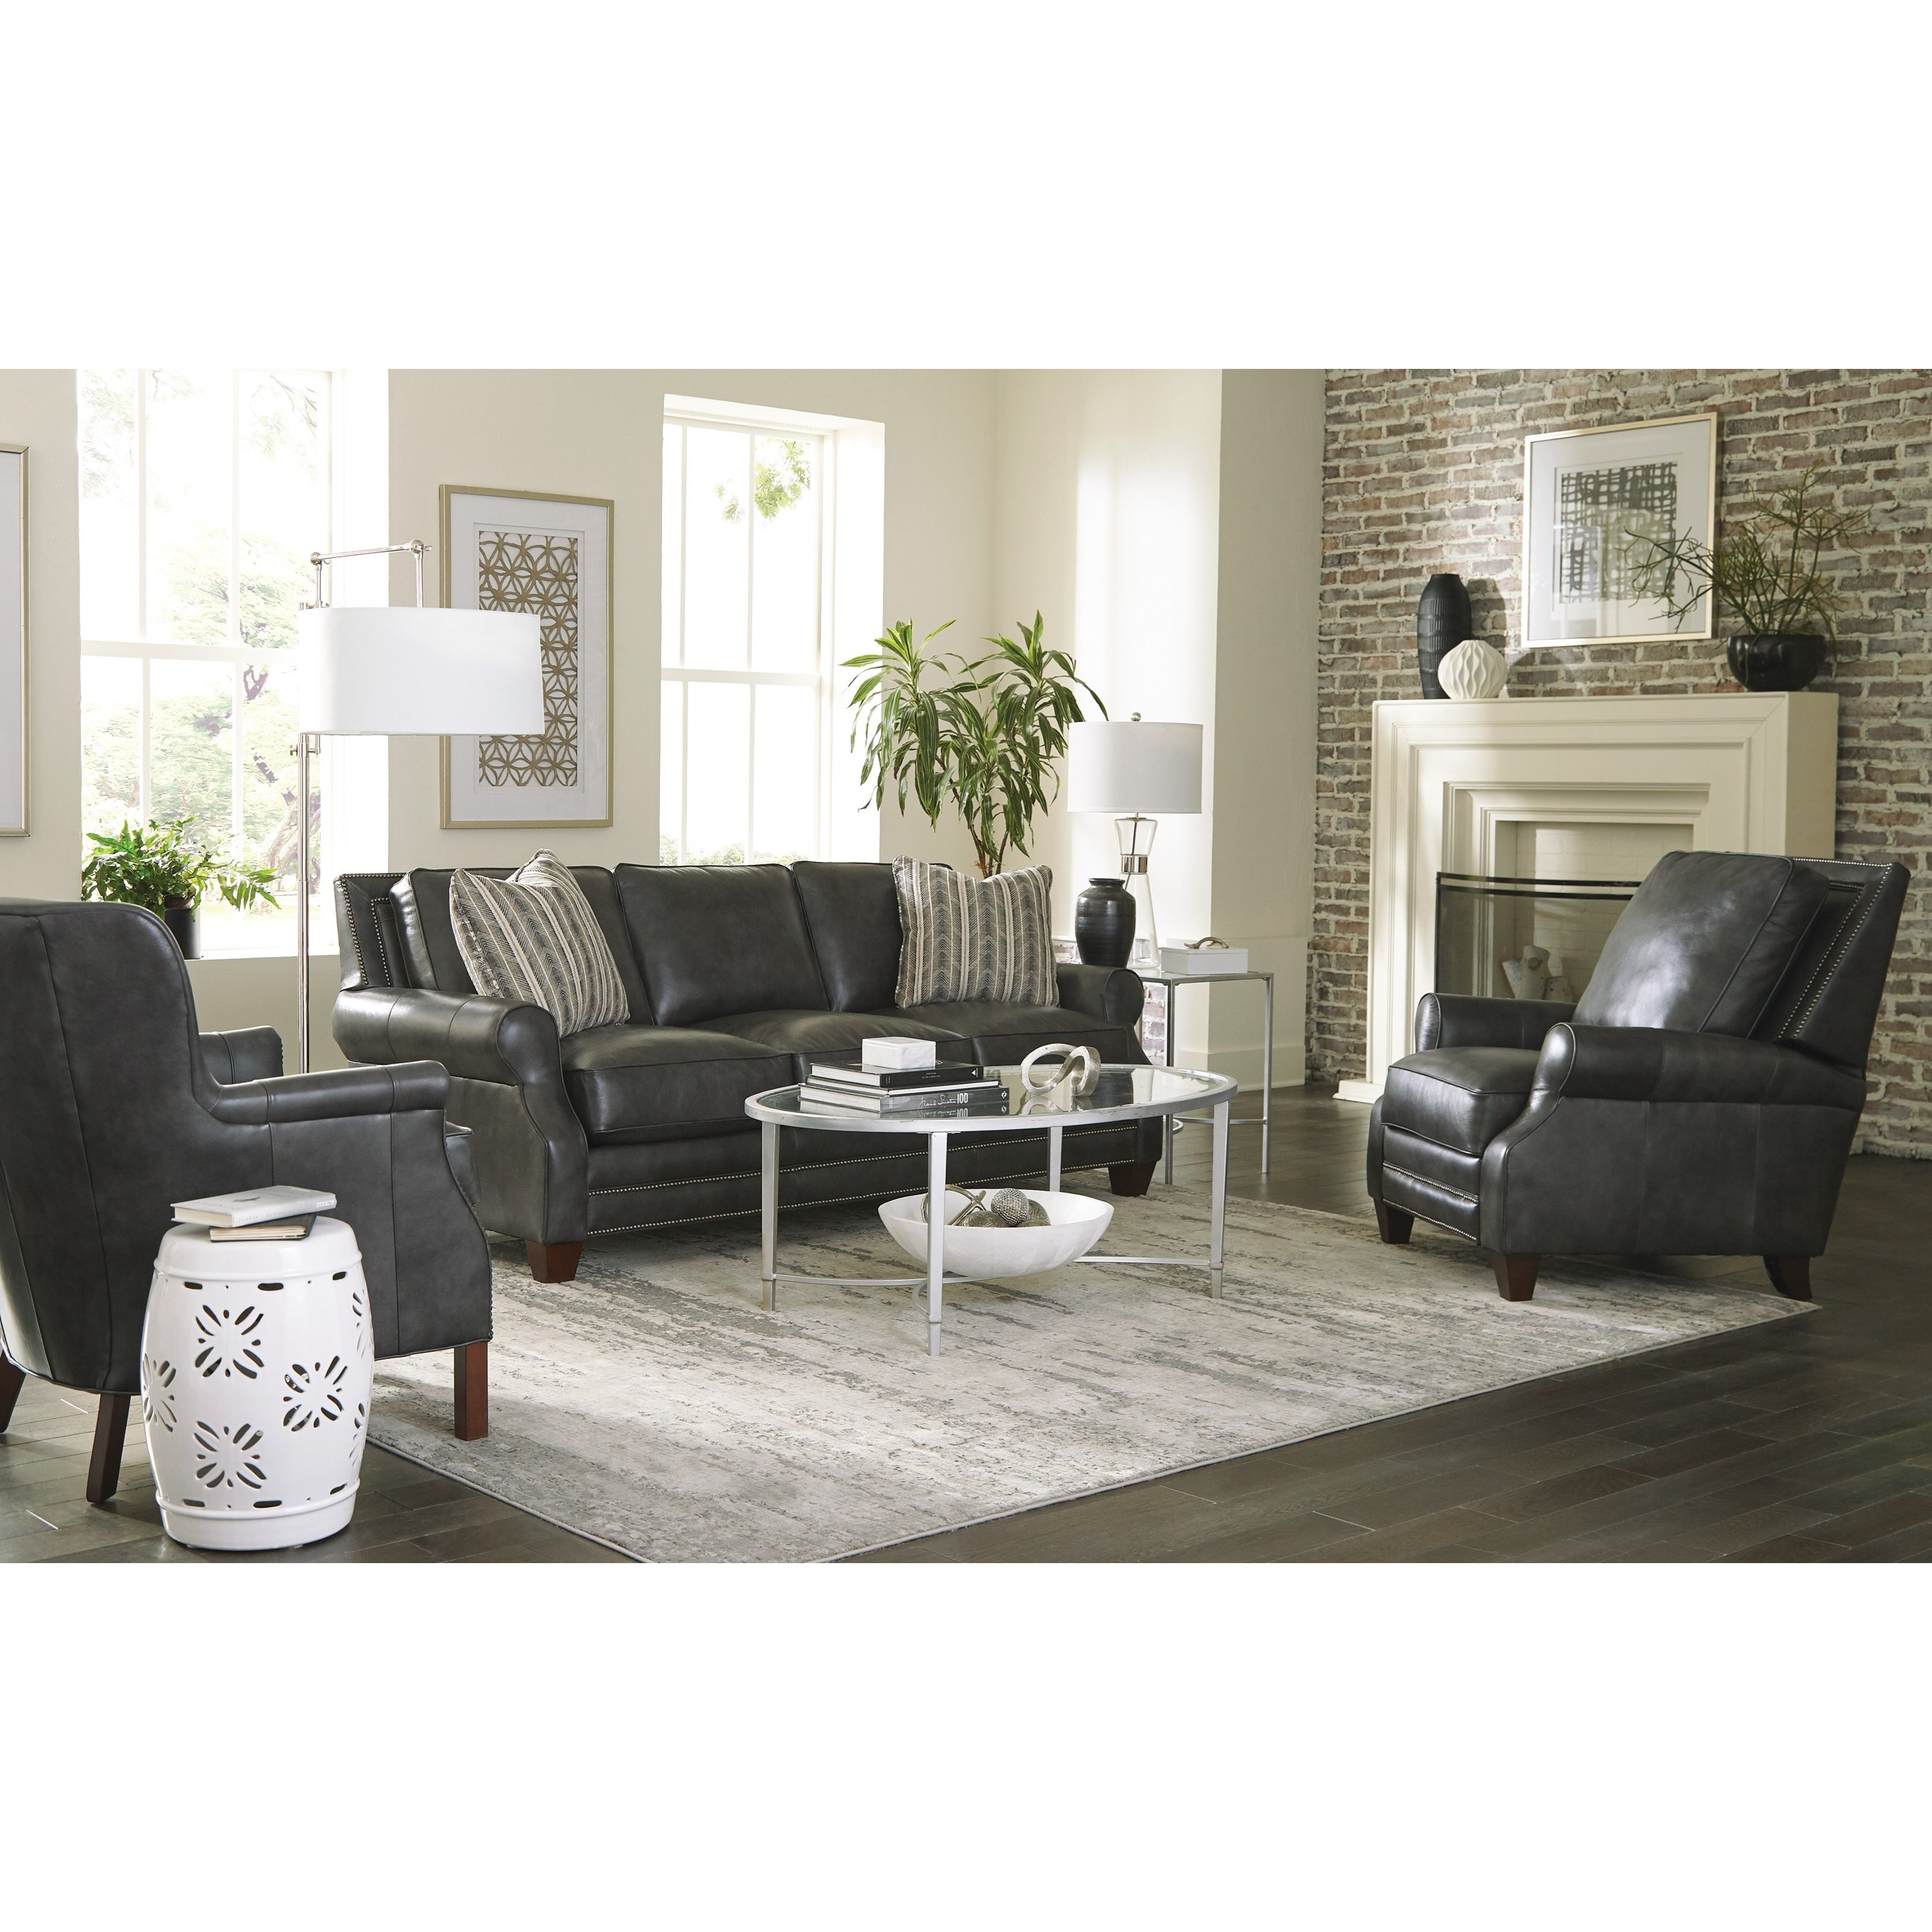 L793550BD Living Room Group by Craftmaster at Baer's Furniture